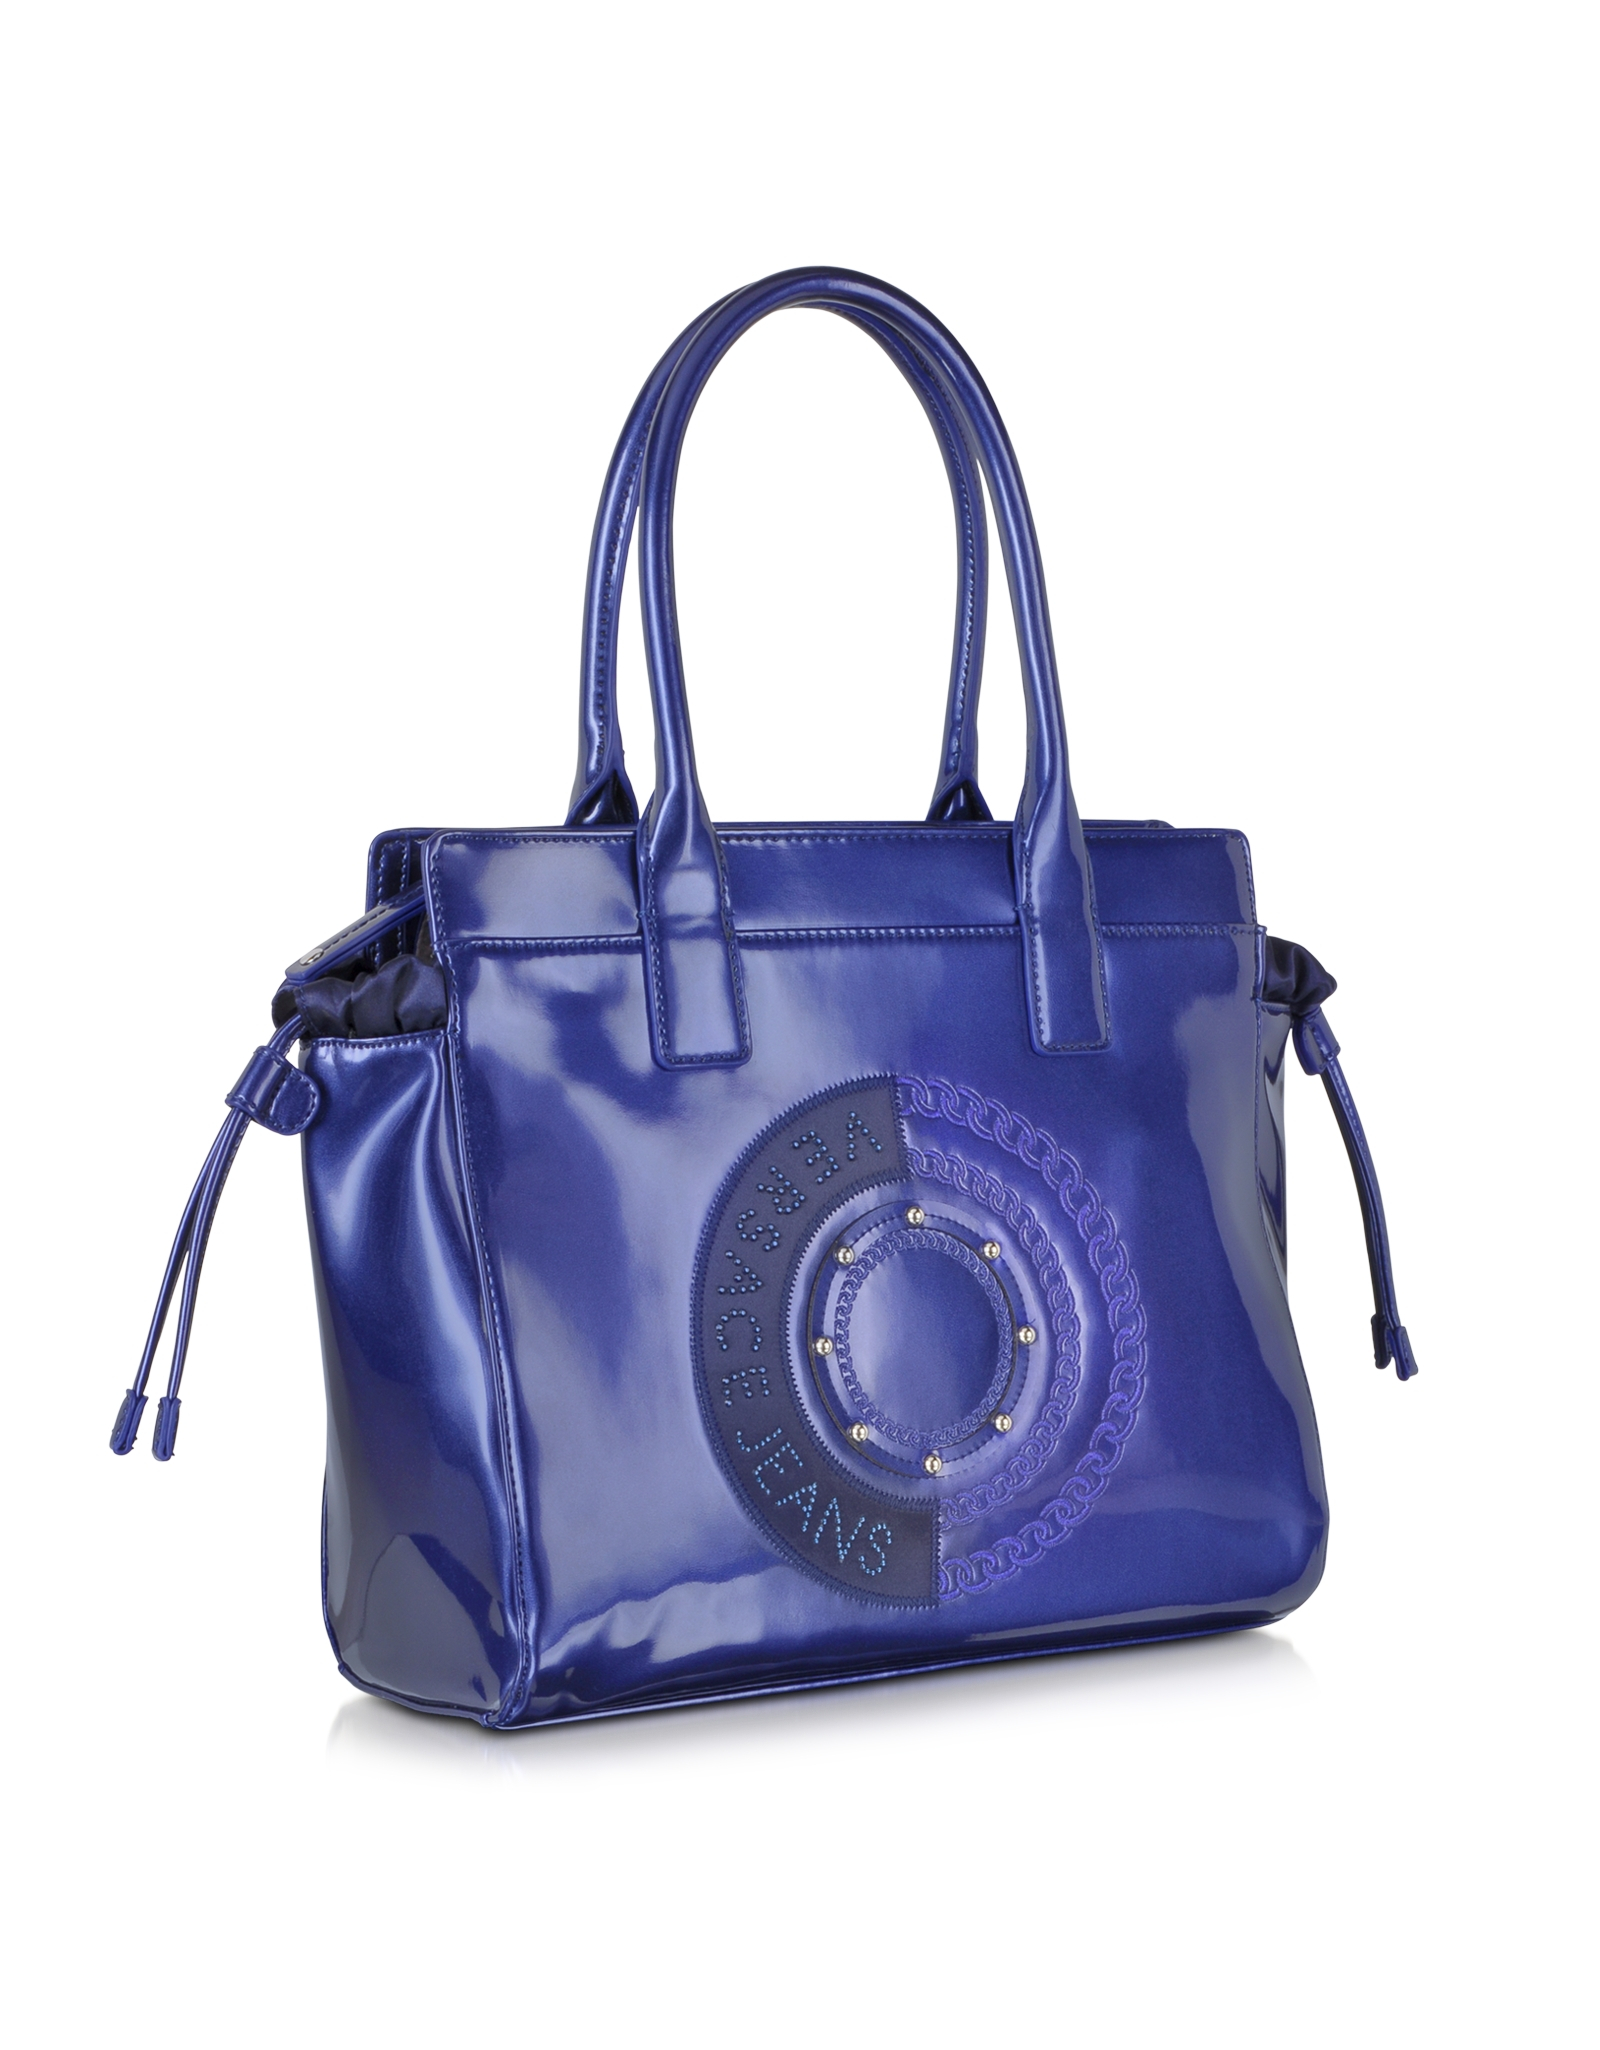 Lyst - Versace Jeans Blue Patent Eco Leather Tote in Blue 66cbd35530